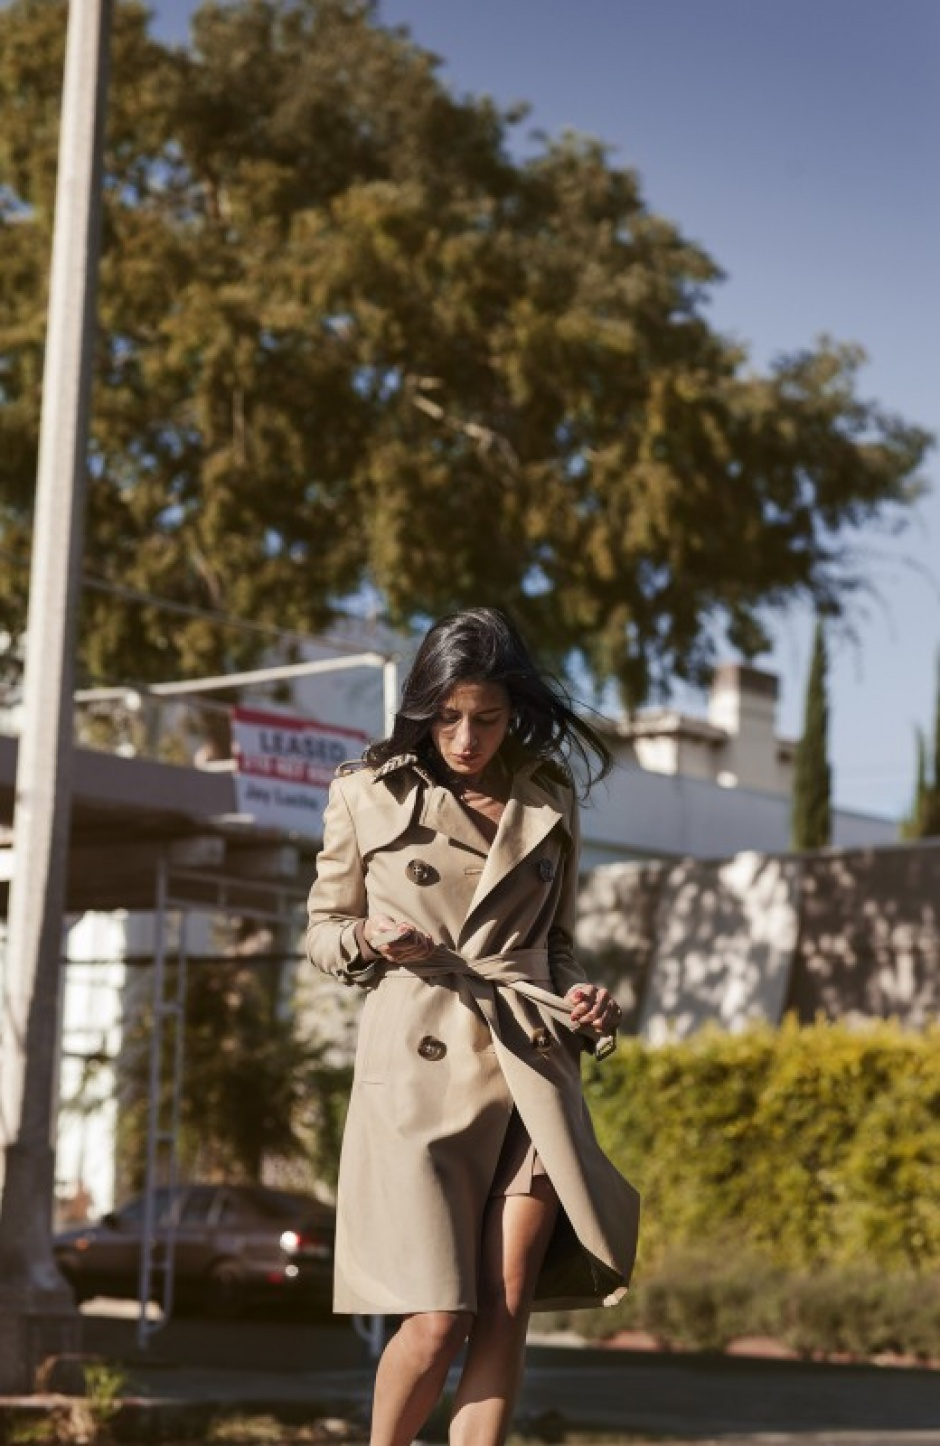 Burberry trench coat Haya Maraka The Art of the Trench